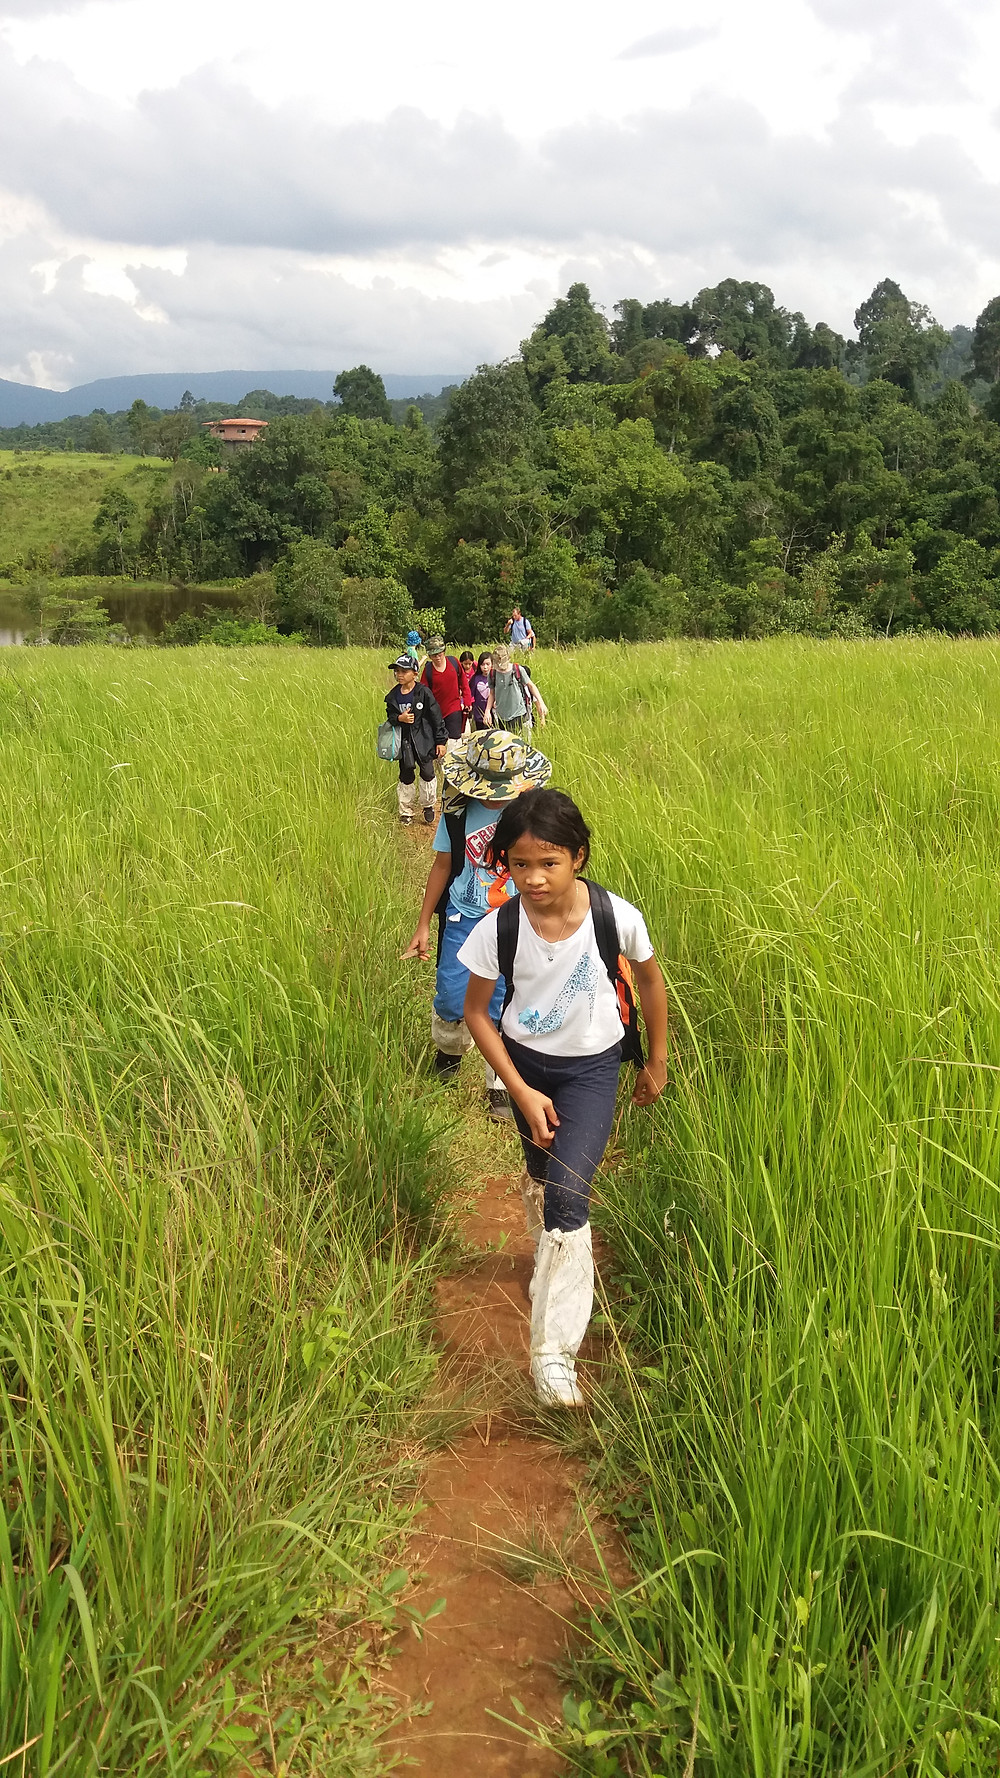 Children hiking outdoors in  grassland environment in Thailand.